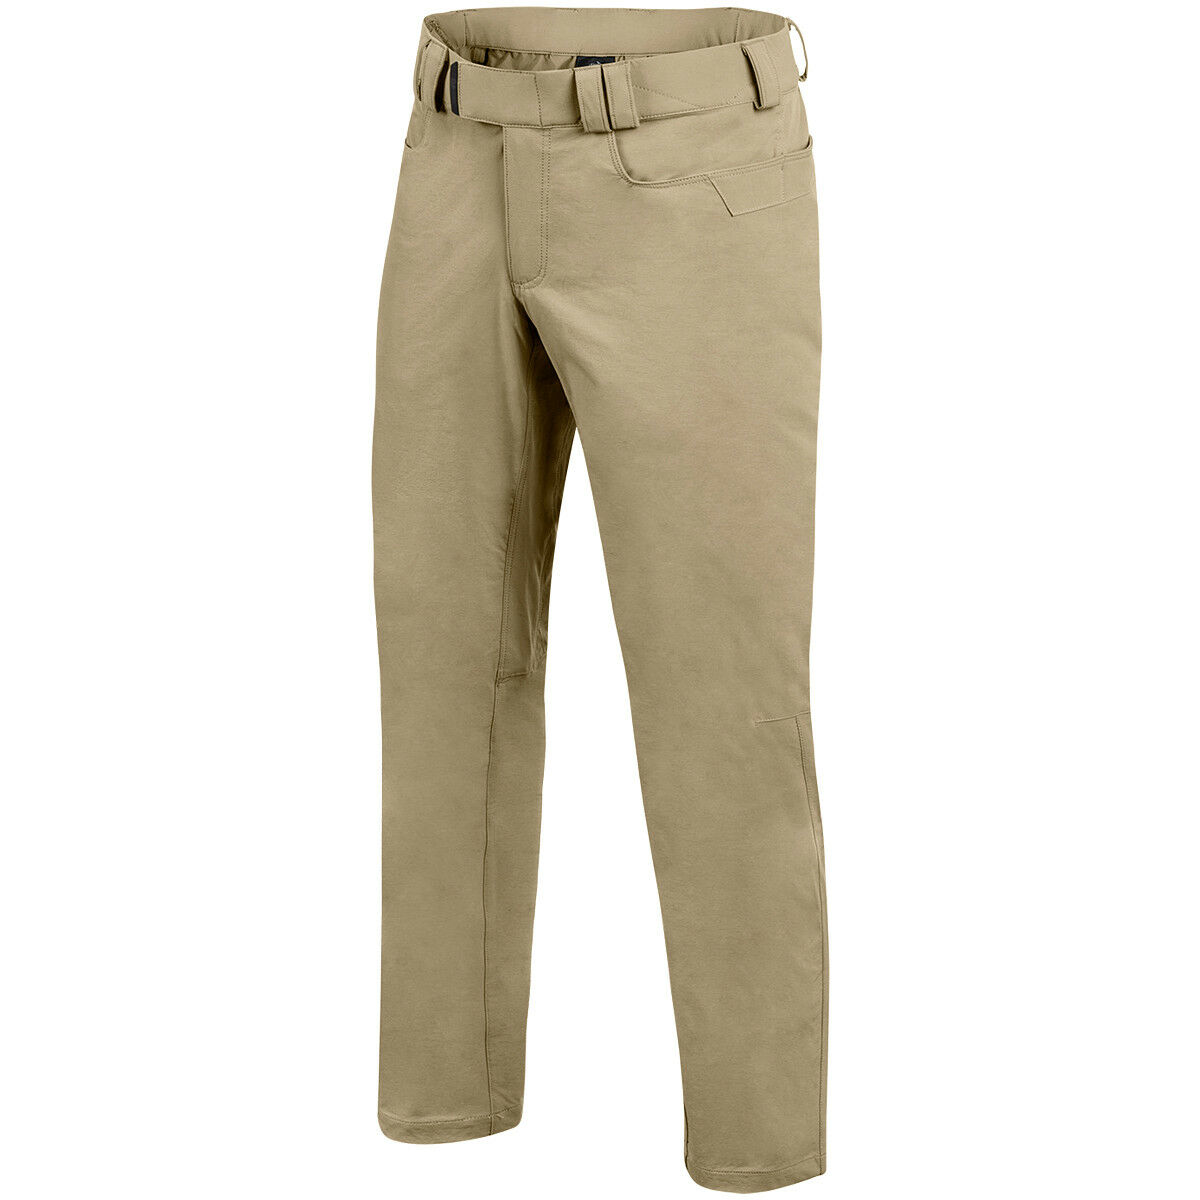 Helikon CTP Cogreen Tactical Pants Travel Combat Airsoft Army Mens Trousers Khaki